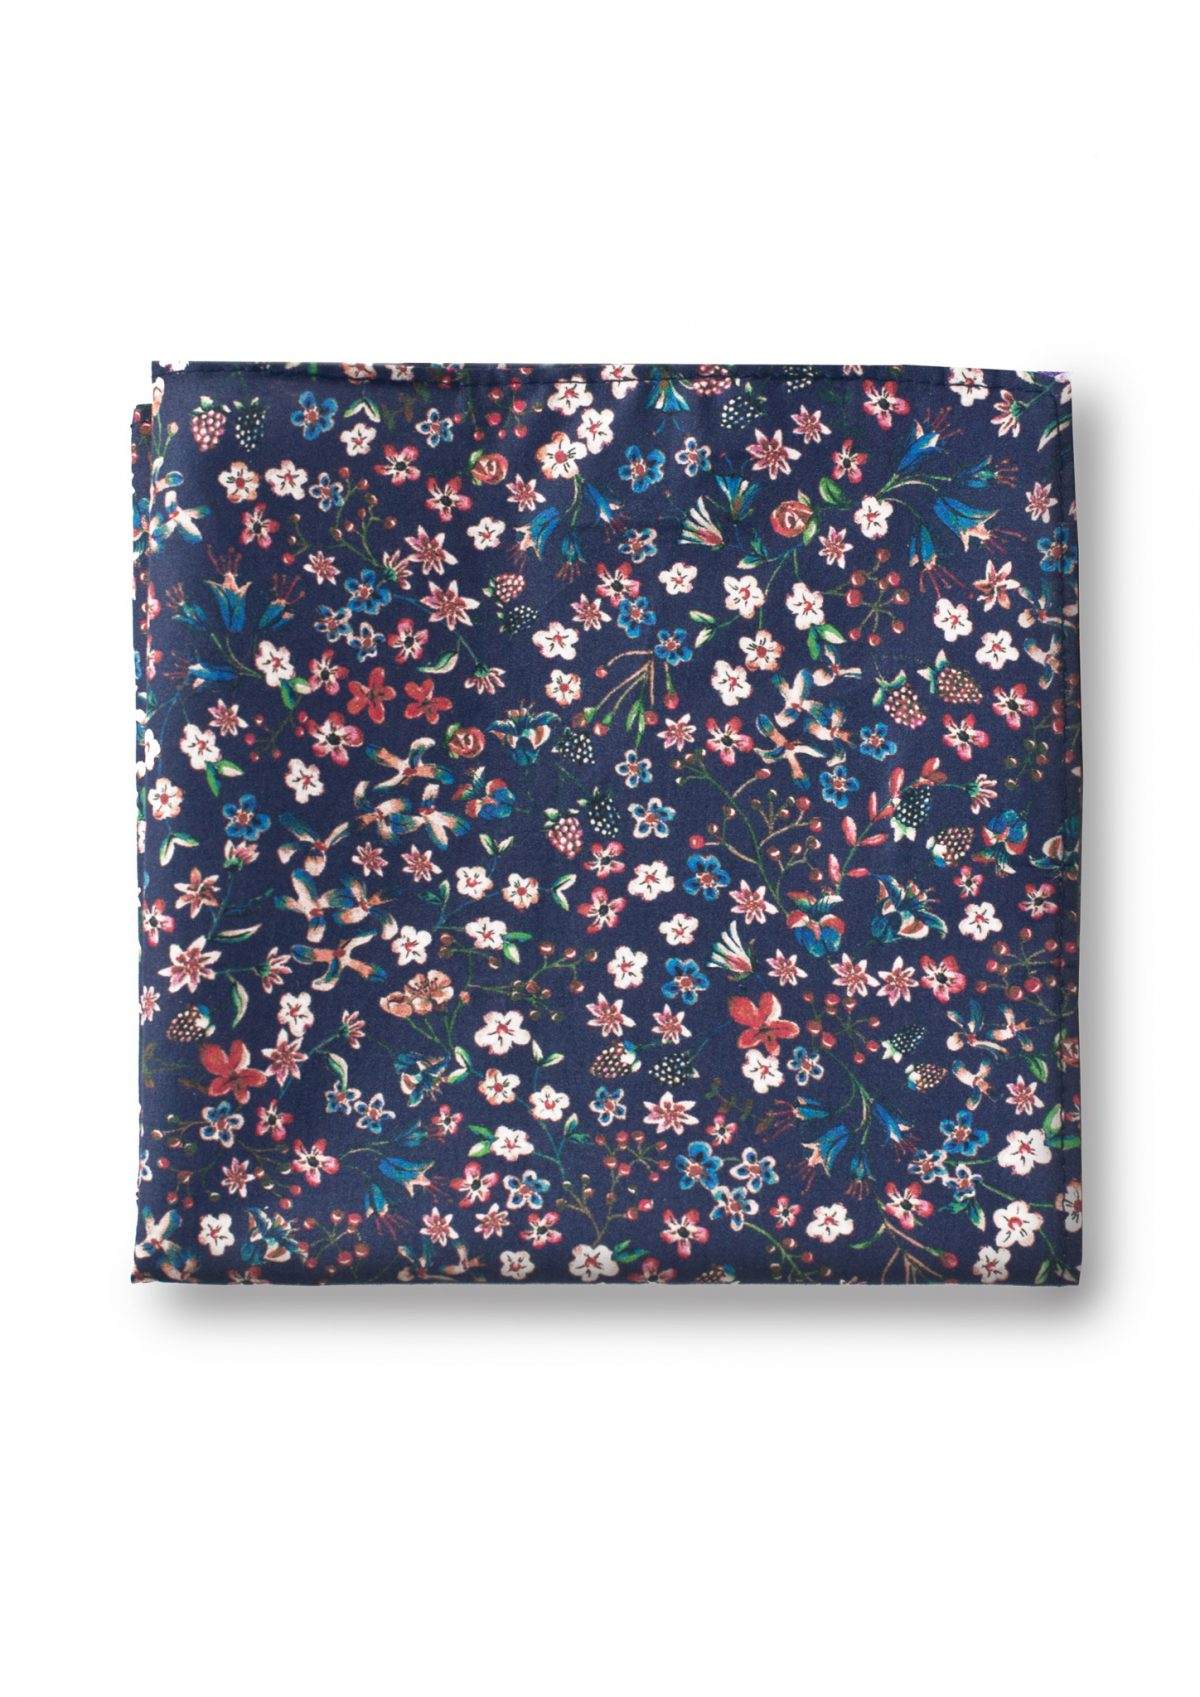 3.DonnaLeighPocketSquare-1